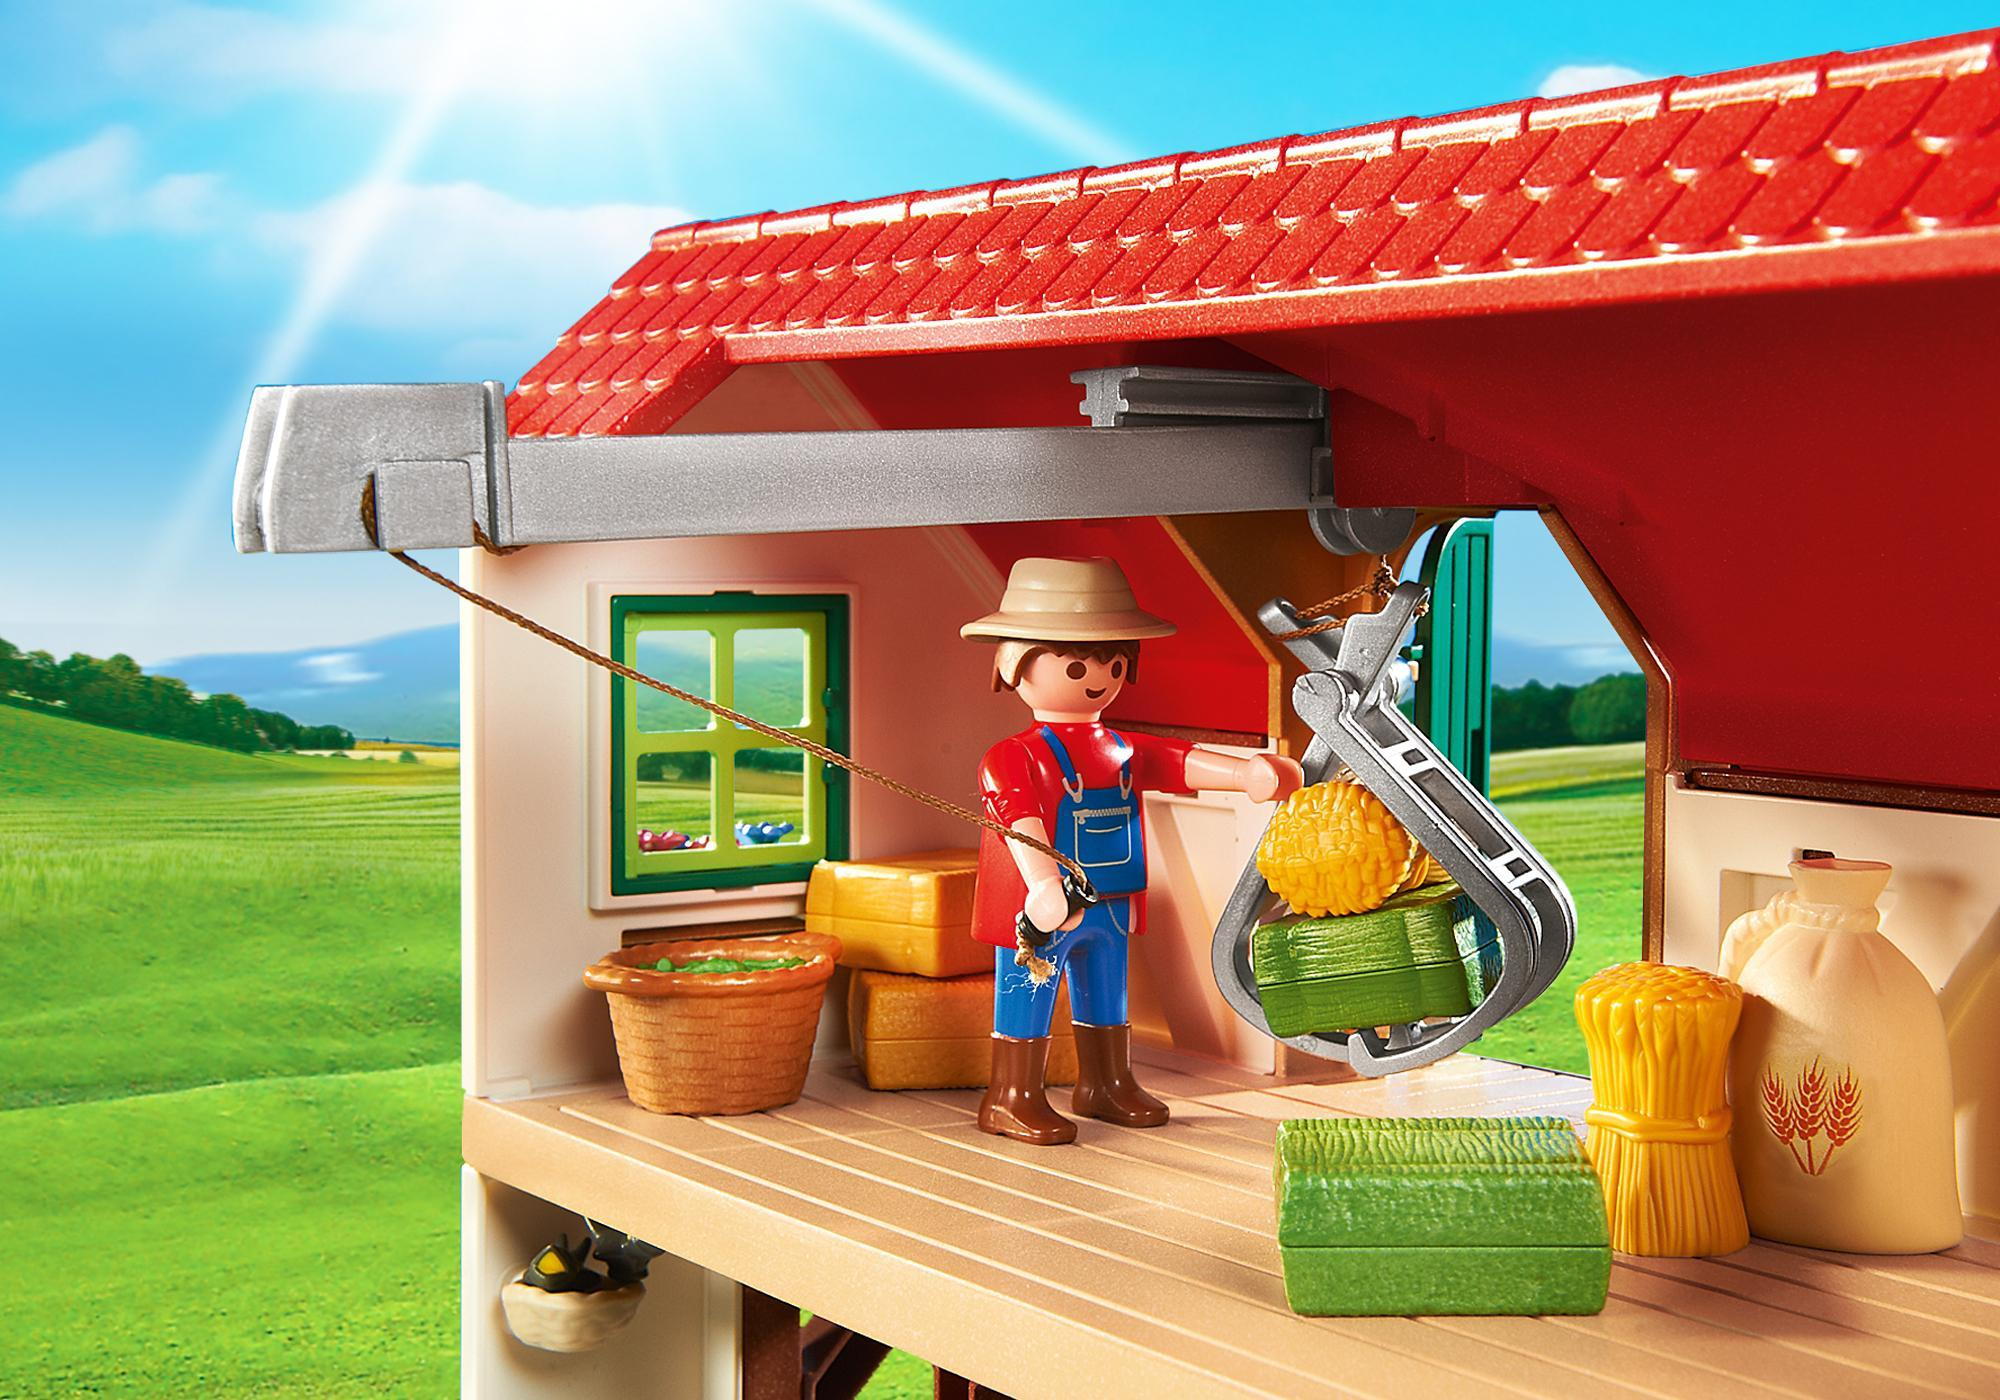 http://media.playmobil.com/i/playmobil/6120_product_extra3